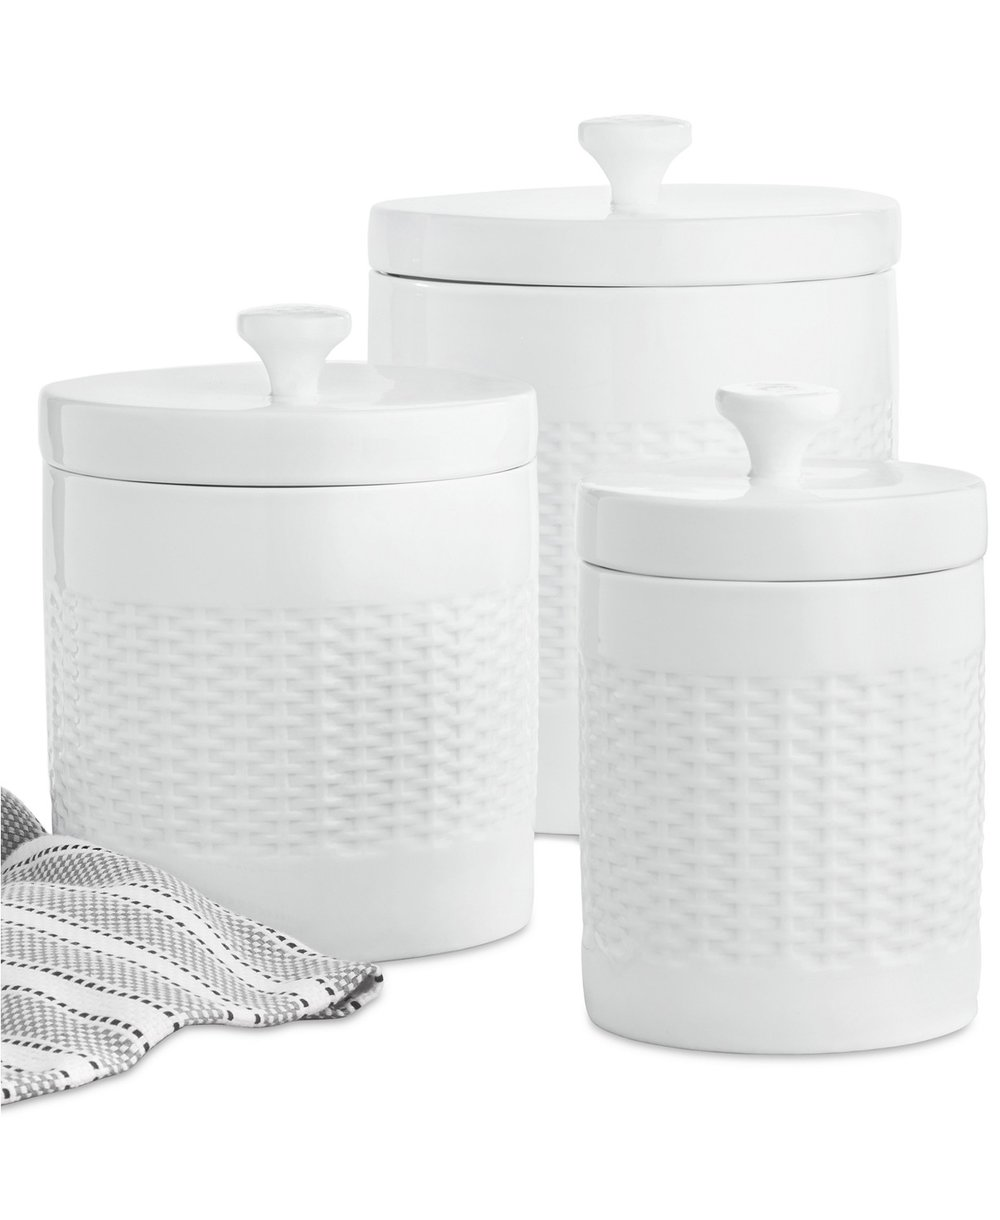 Martha Stewart - Updated Set of 3 Classic Basketweave Canisters